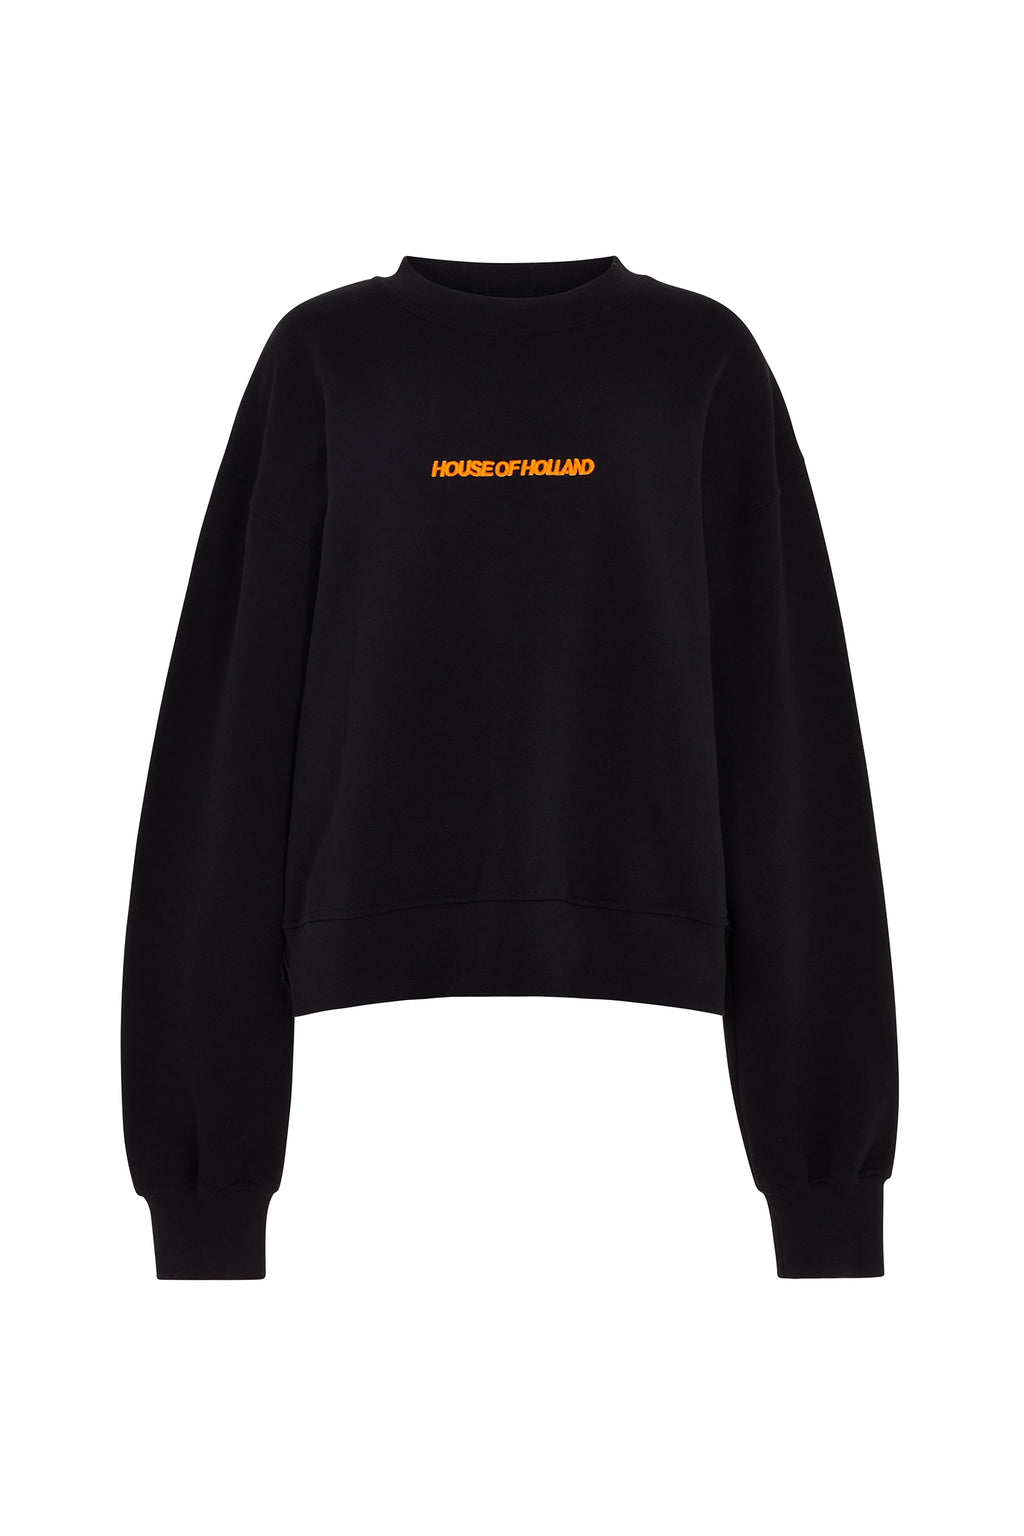 House of Holland Schwarzes Sweatshirt